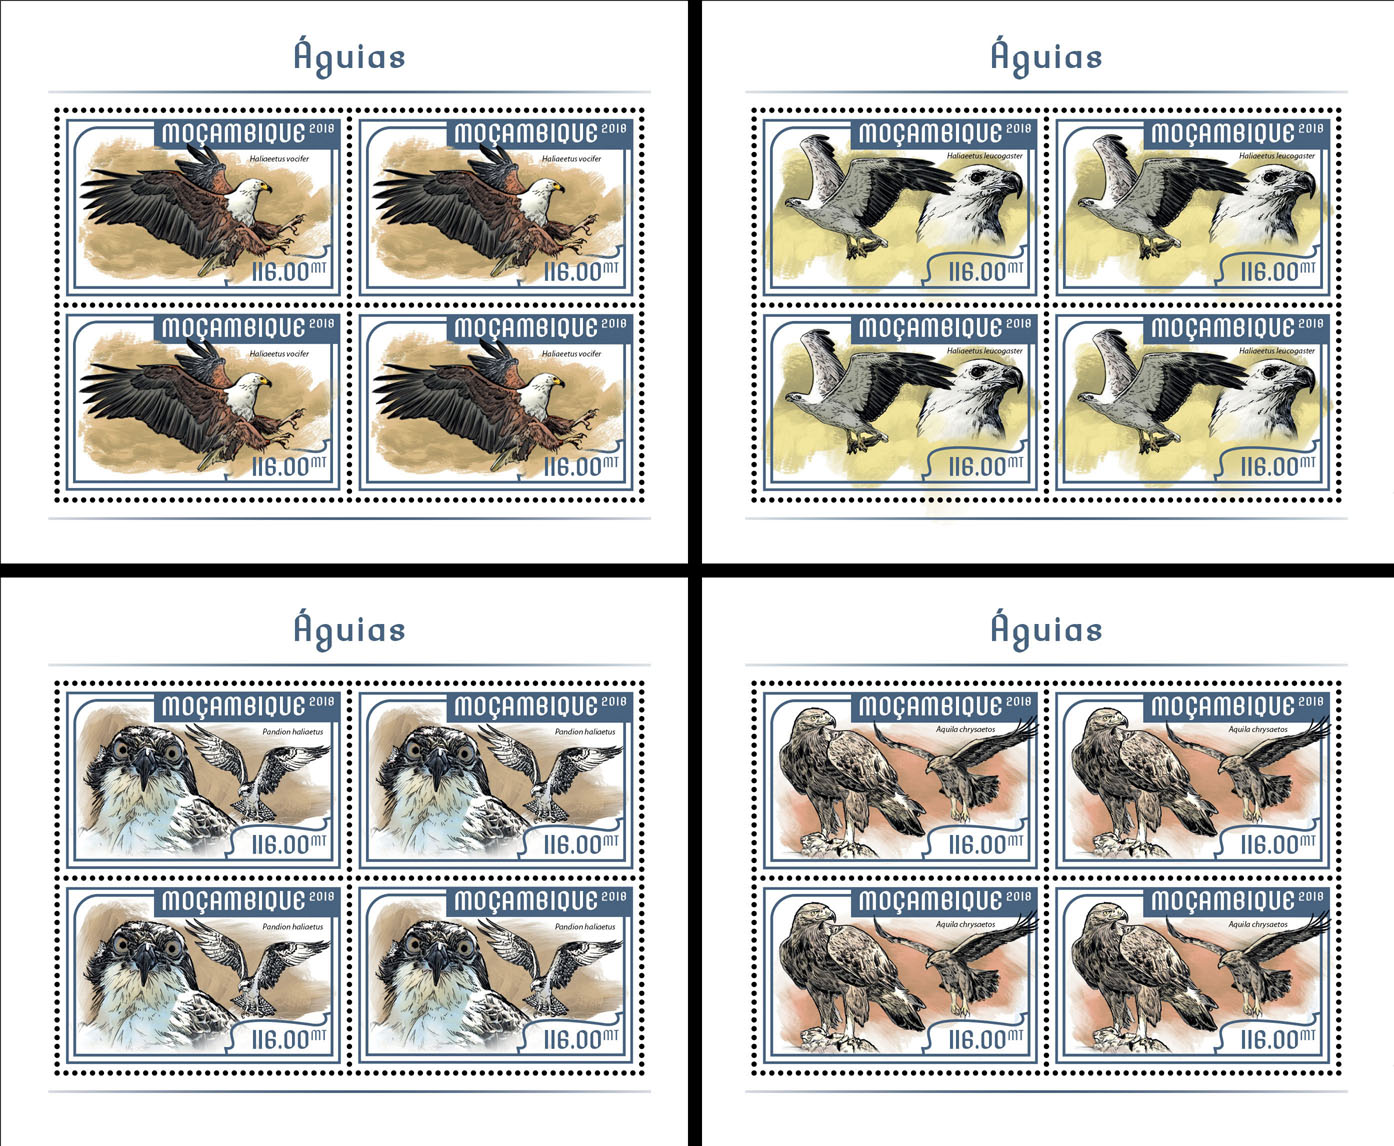 Eagles(4 sets of 4 stamps) - Issue of Mozambique postage Stamps